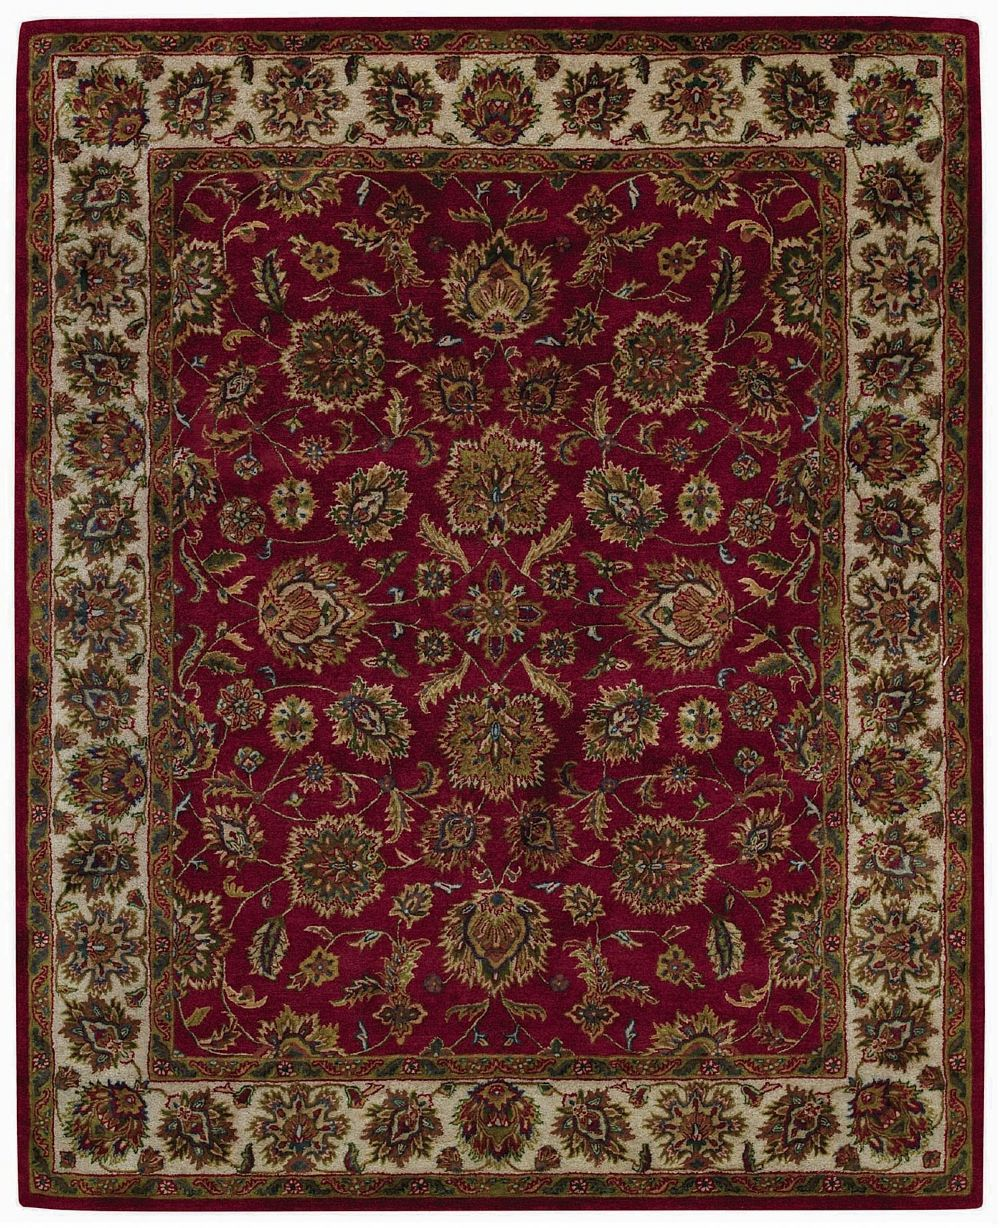 capel piedmont-persian traditional area rug collection